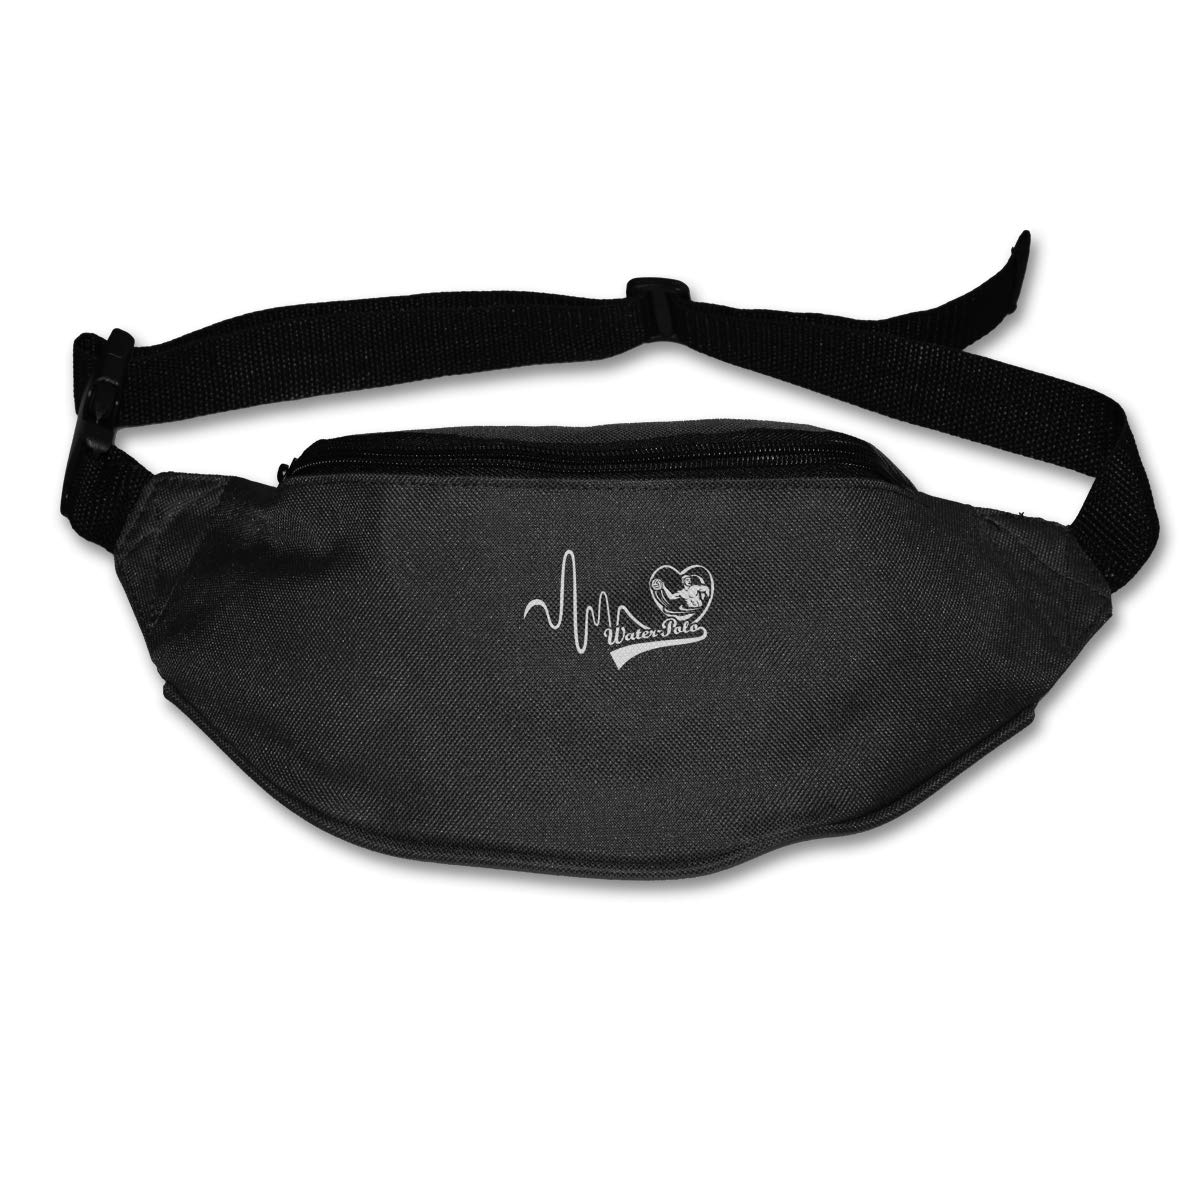 Heart Water Polo Sport Waist Pack Fanny Pack Adjustable For Travel